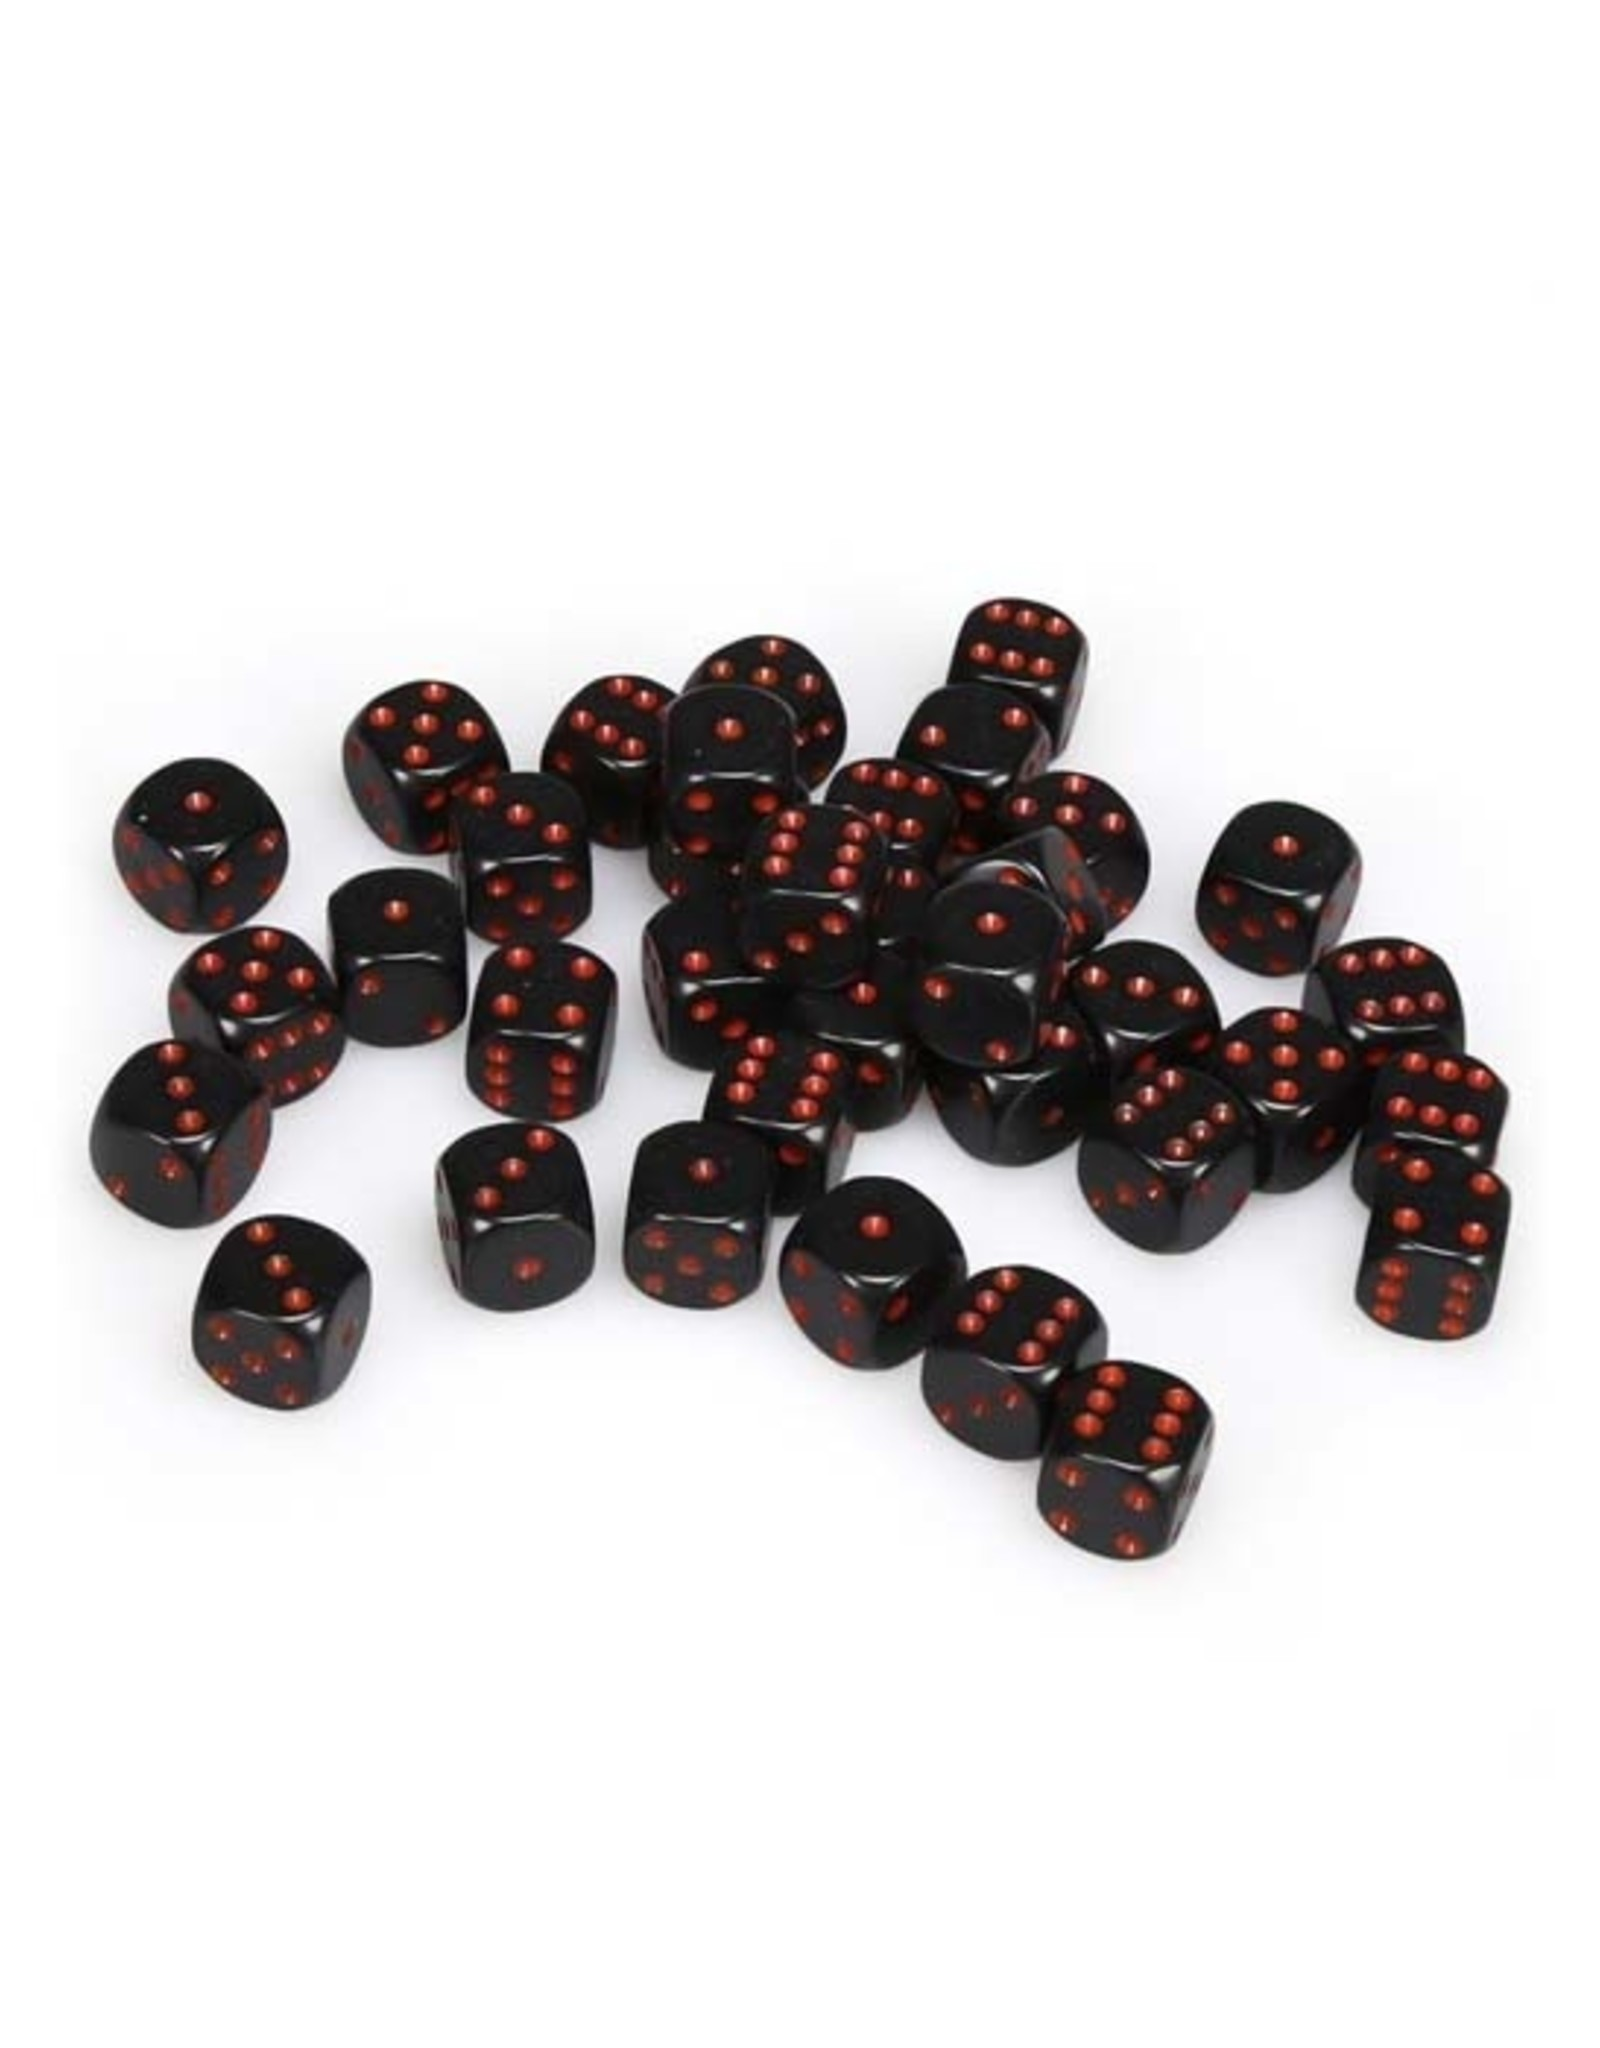 Chessex Chessex: 12mm D6 - Opaque - Black w/ Red